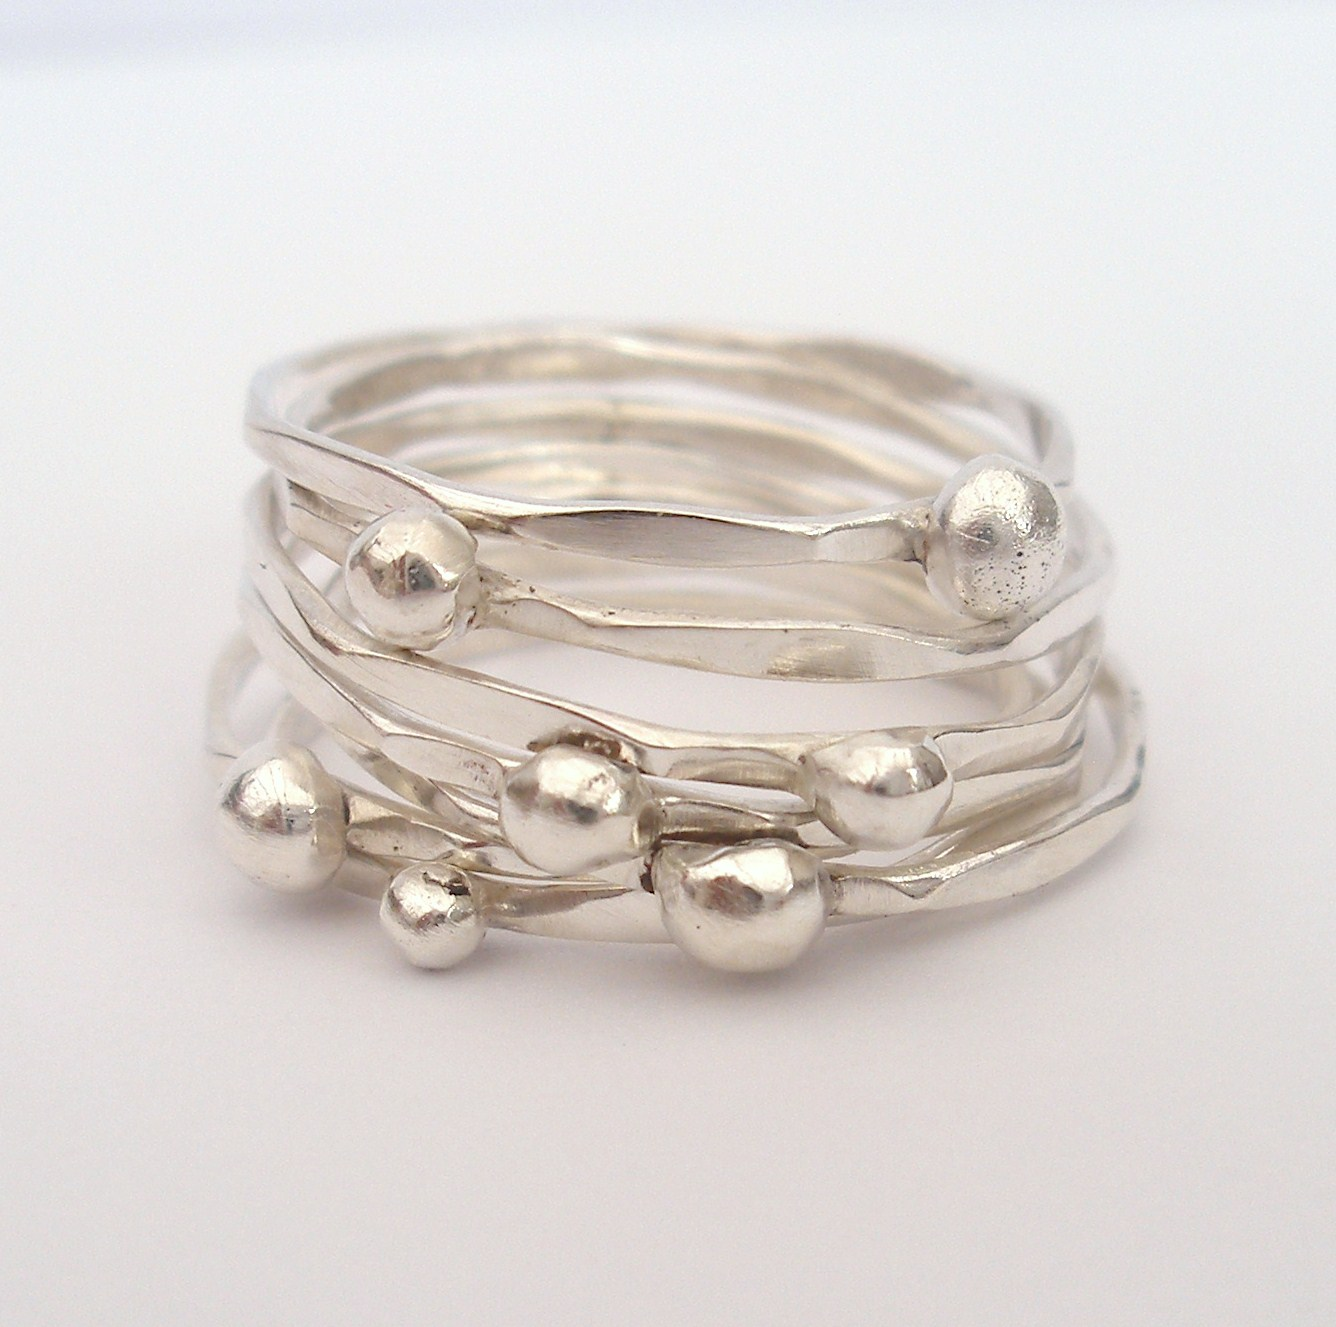 7 silver stacking rings with silver balls felt